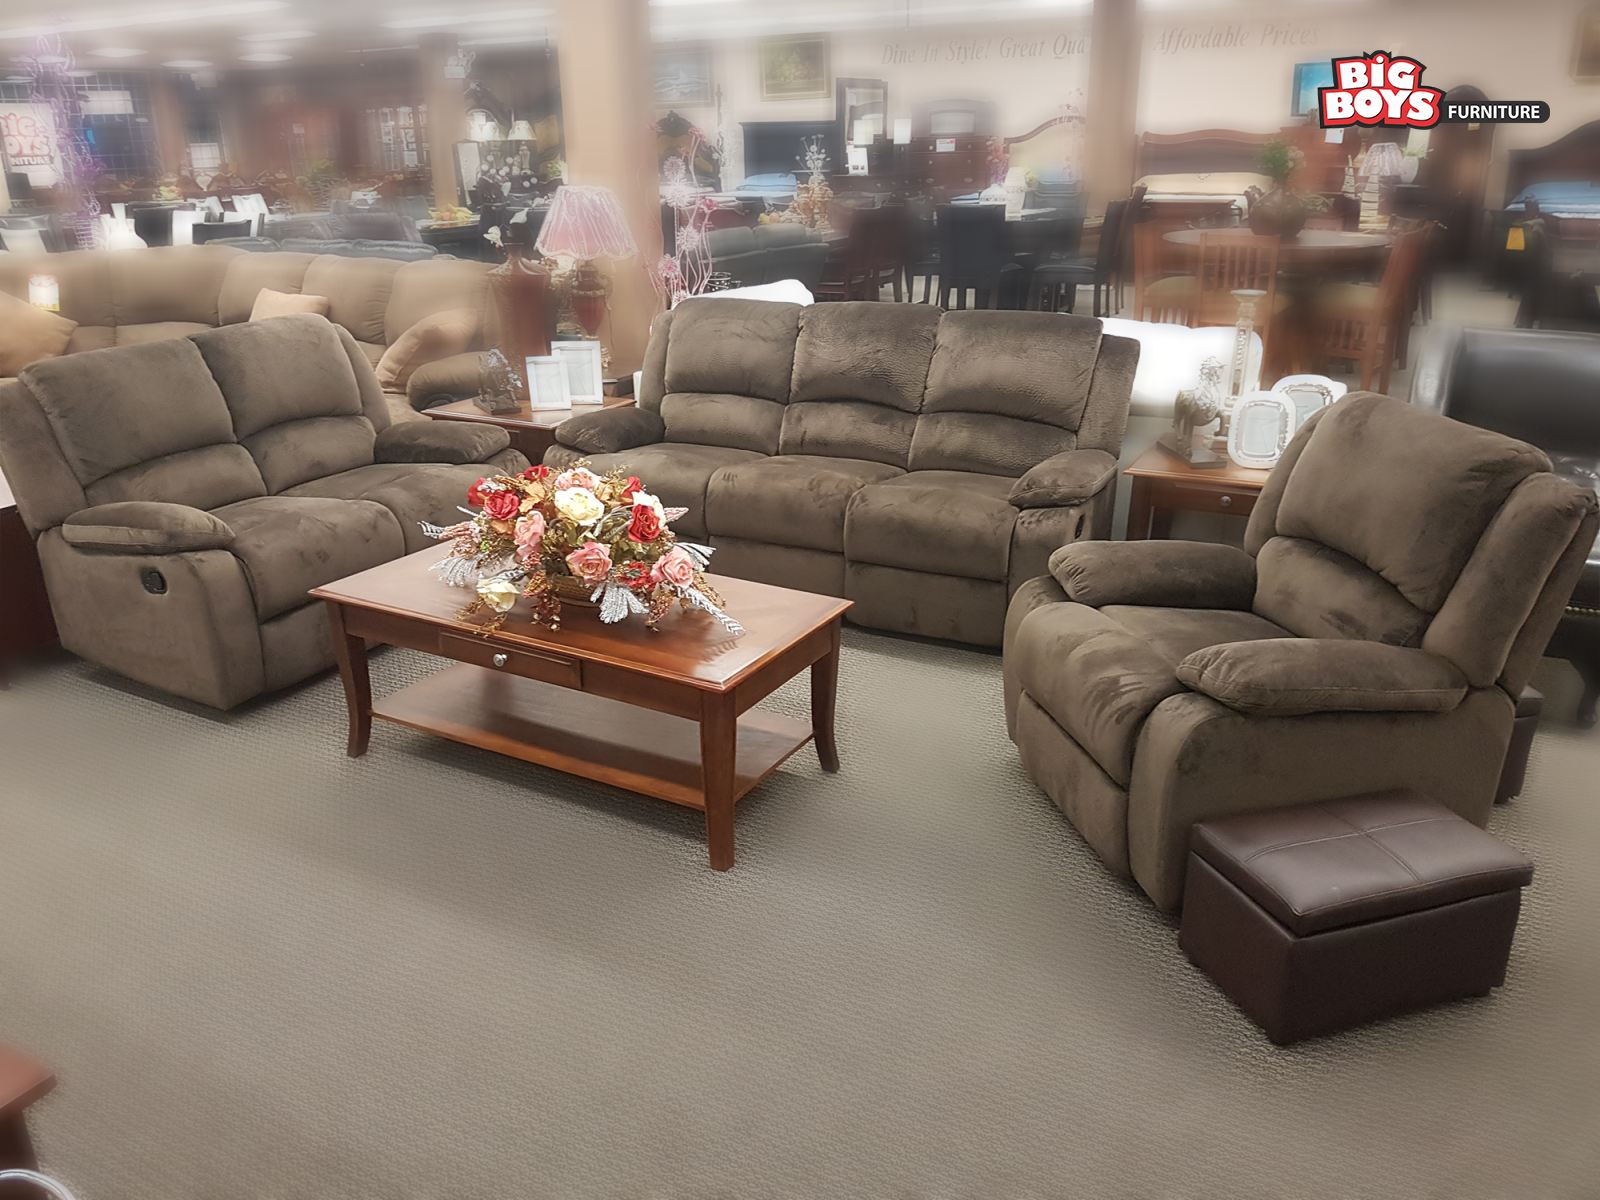 Sofa Sets - Big Boys Furniture